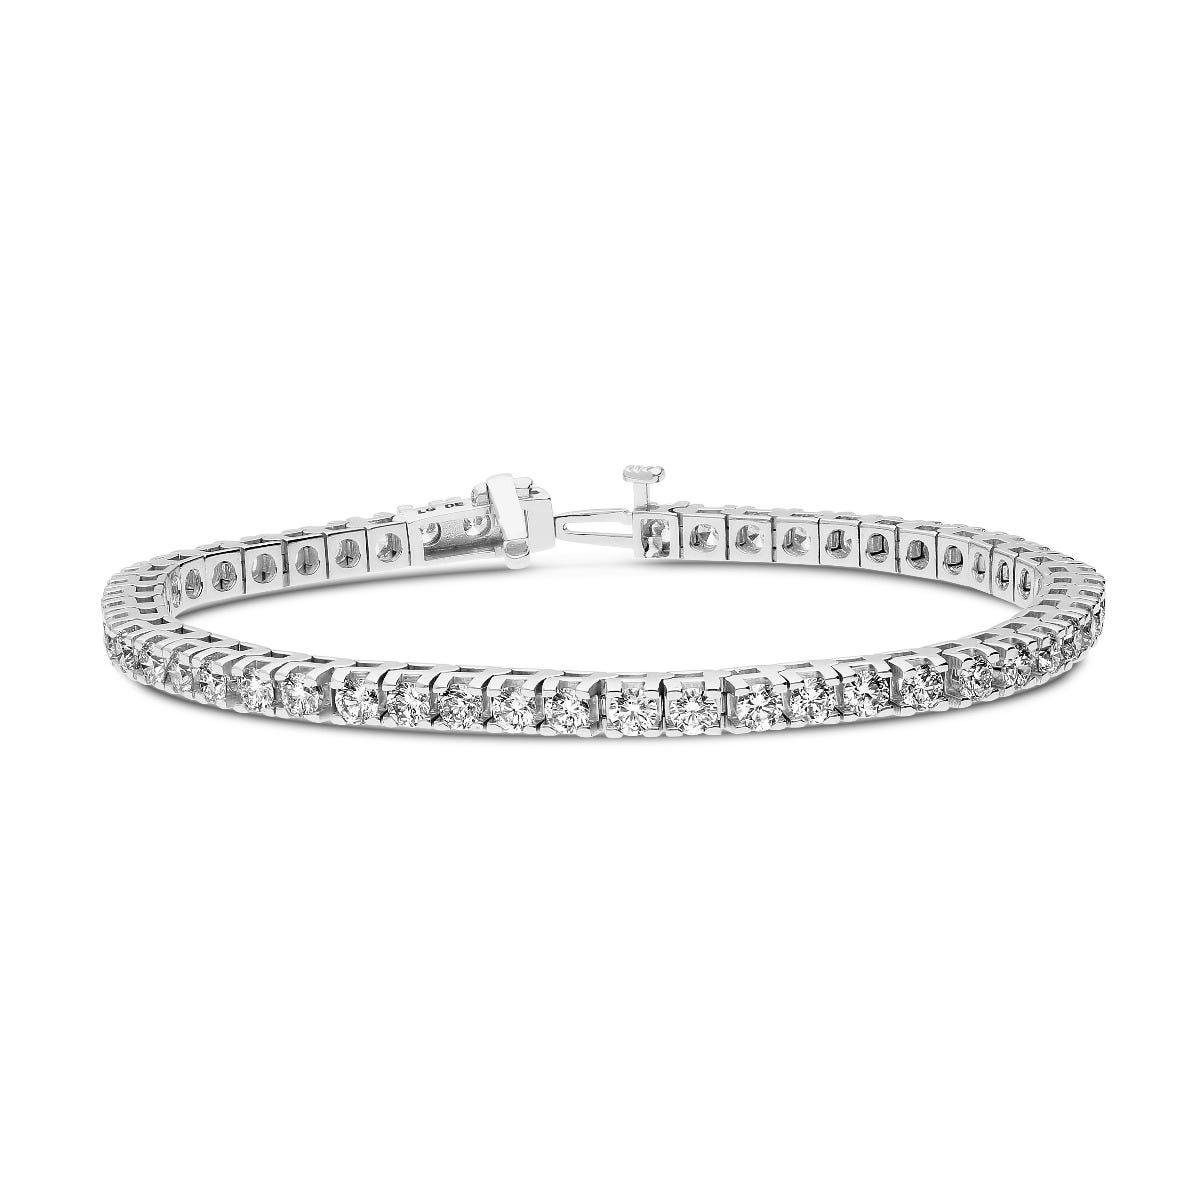 Lab Grown Diamond 3ctw. 4-Prong Diamond Tennis Bracelet in 14k White Gold